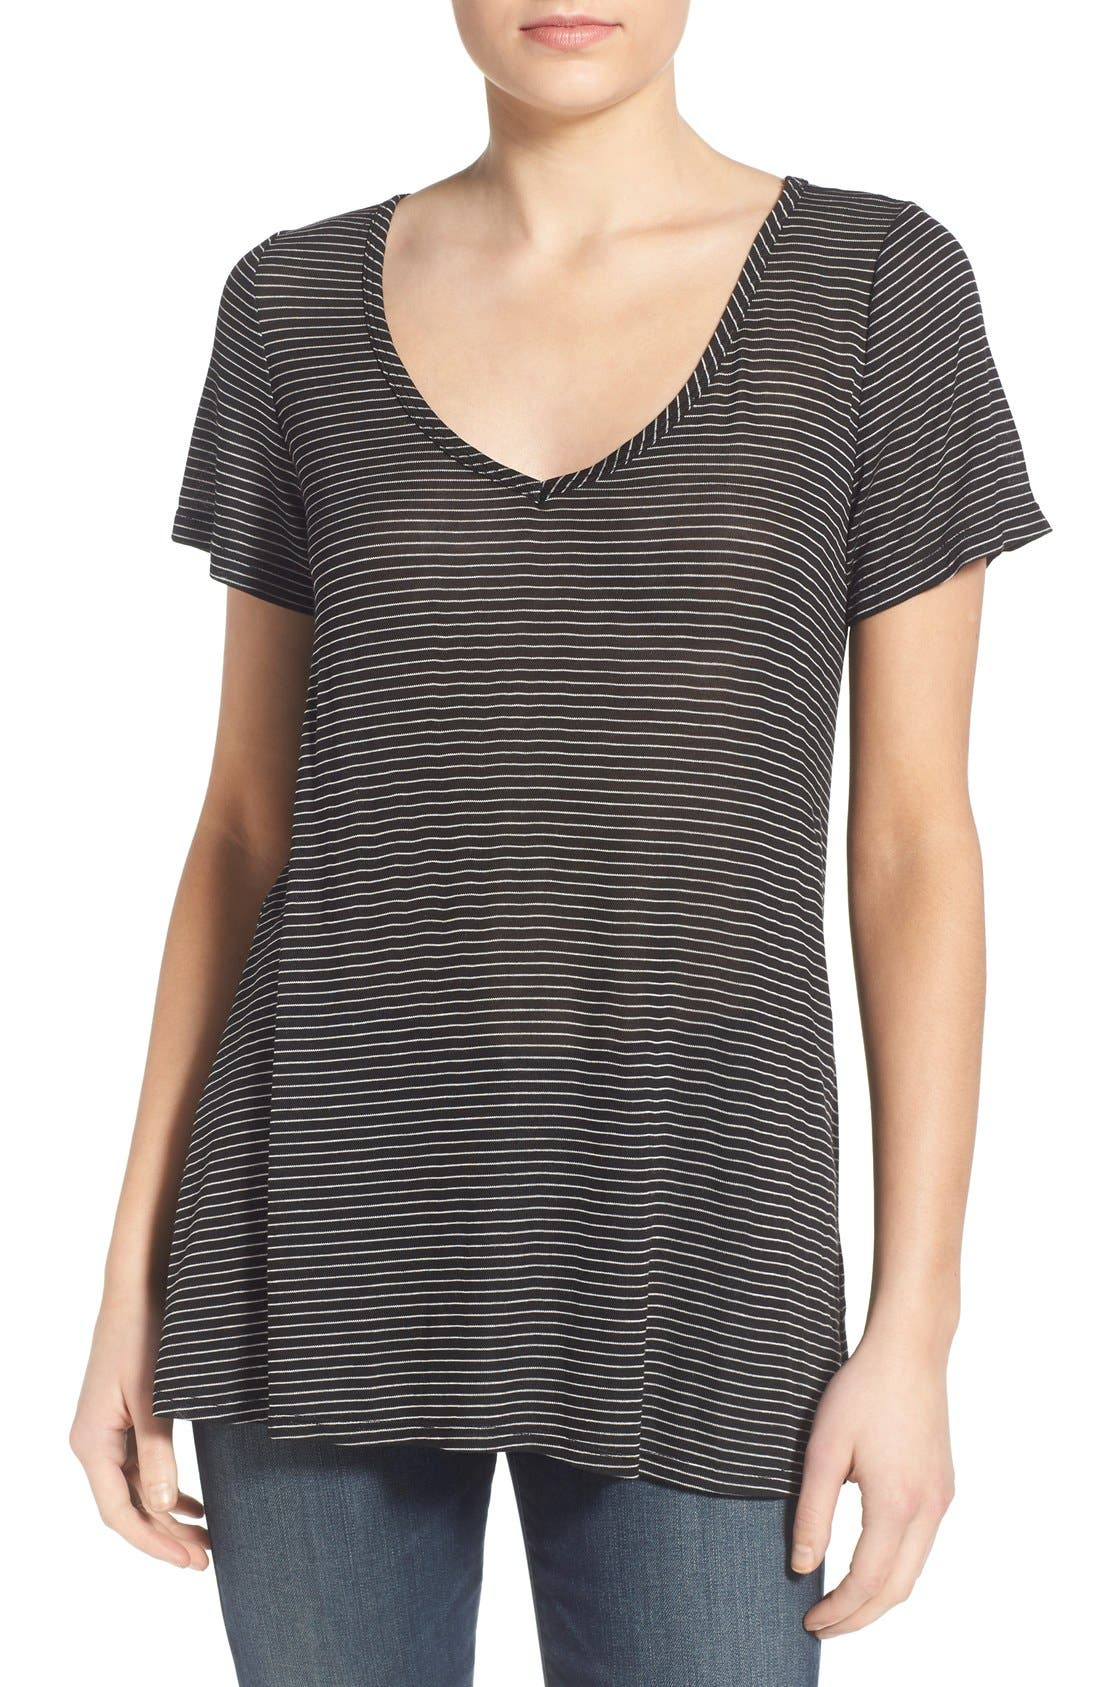 SOCIALITE, Stripe Back Cutout Tee, Main thumbnail 1, color, 003